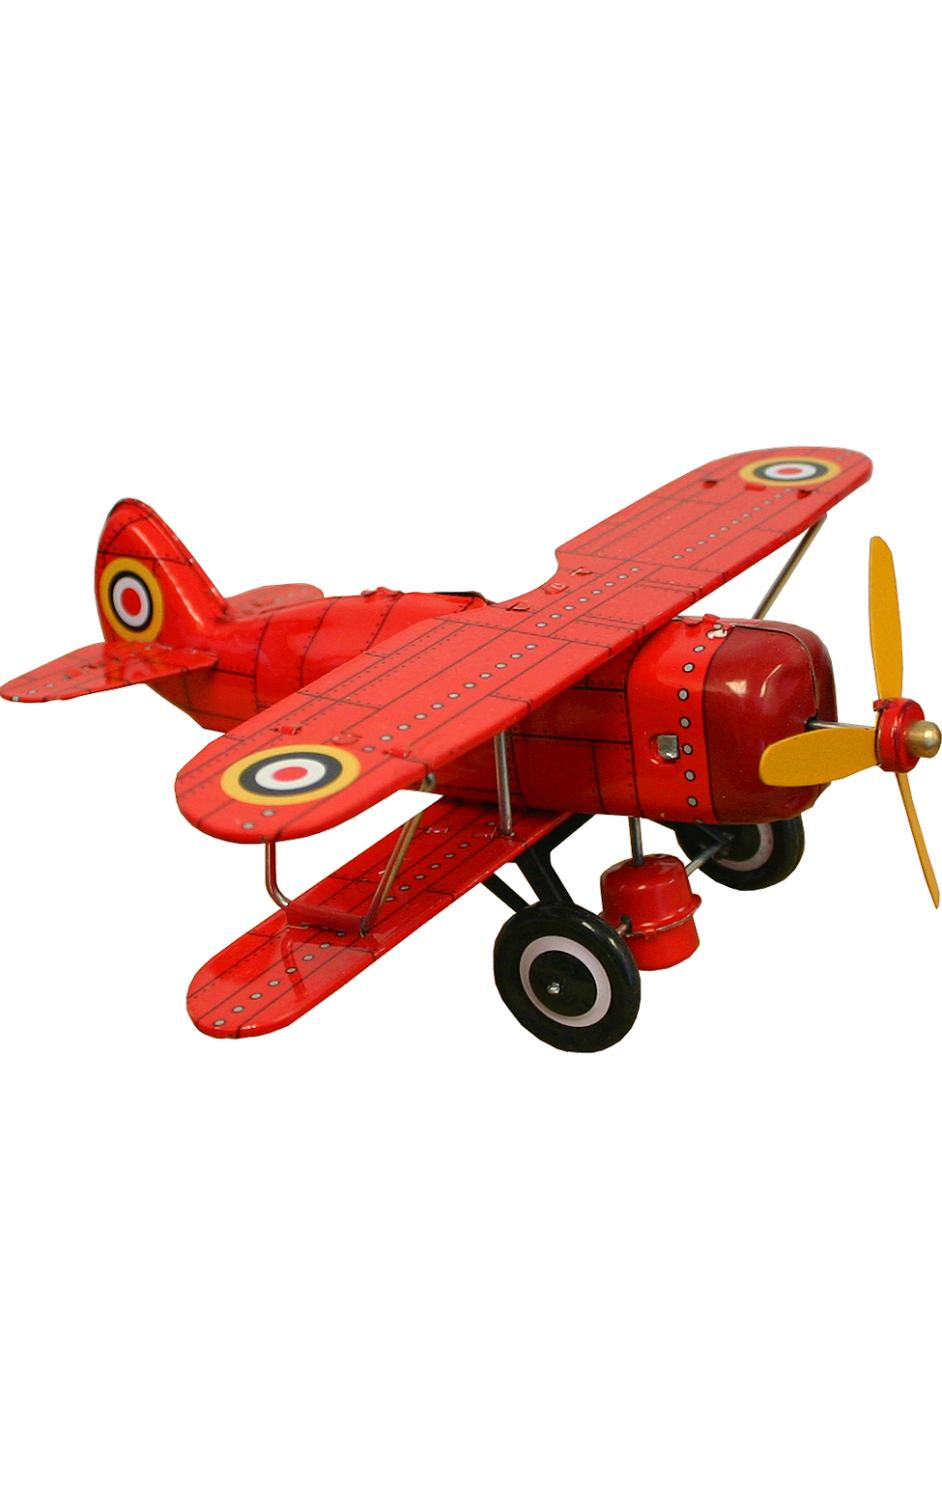 MS454R - Collectible Tin Toy - Red